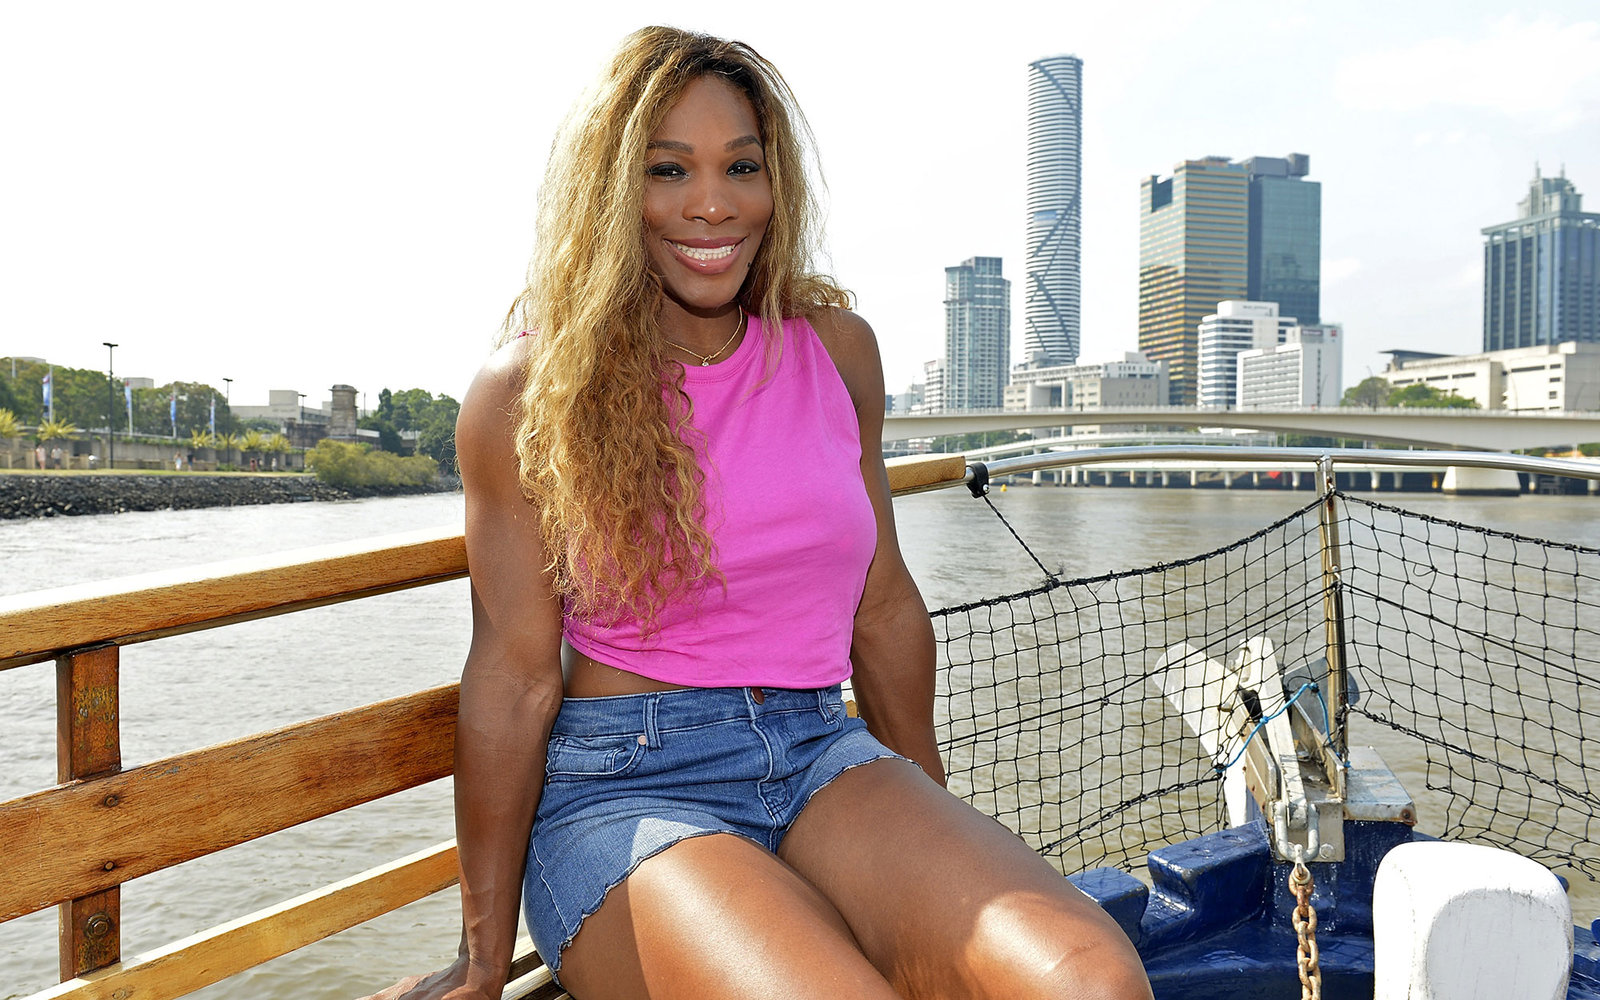 BRISBANE, AUSTRALIA - JANUARY 01: Serena Williams of the USA poses for a photo as she travels down the Brisbane River on a cruise boat during day four of the 2014 Brisbane International at Queensland Tennis Centre on January 1, 2014 in Brisbane, Australia